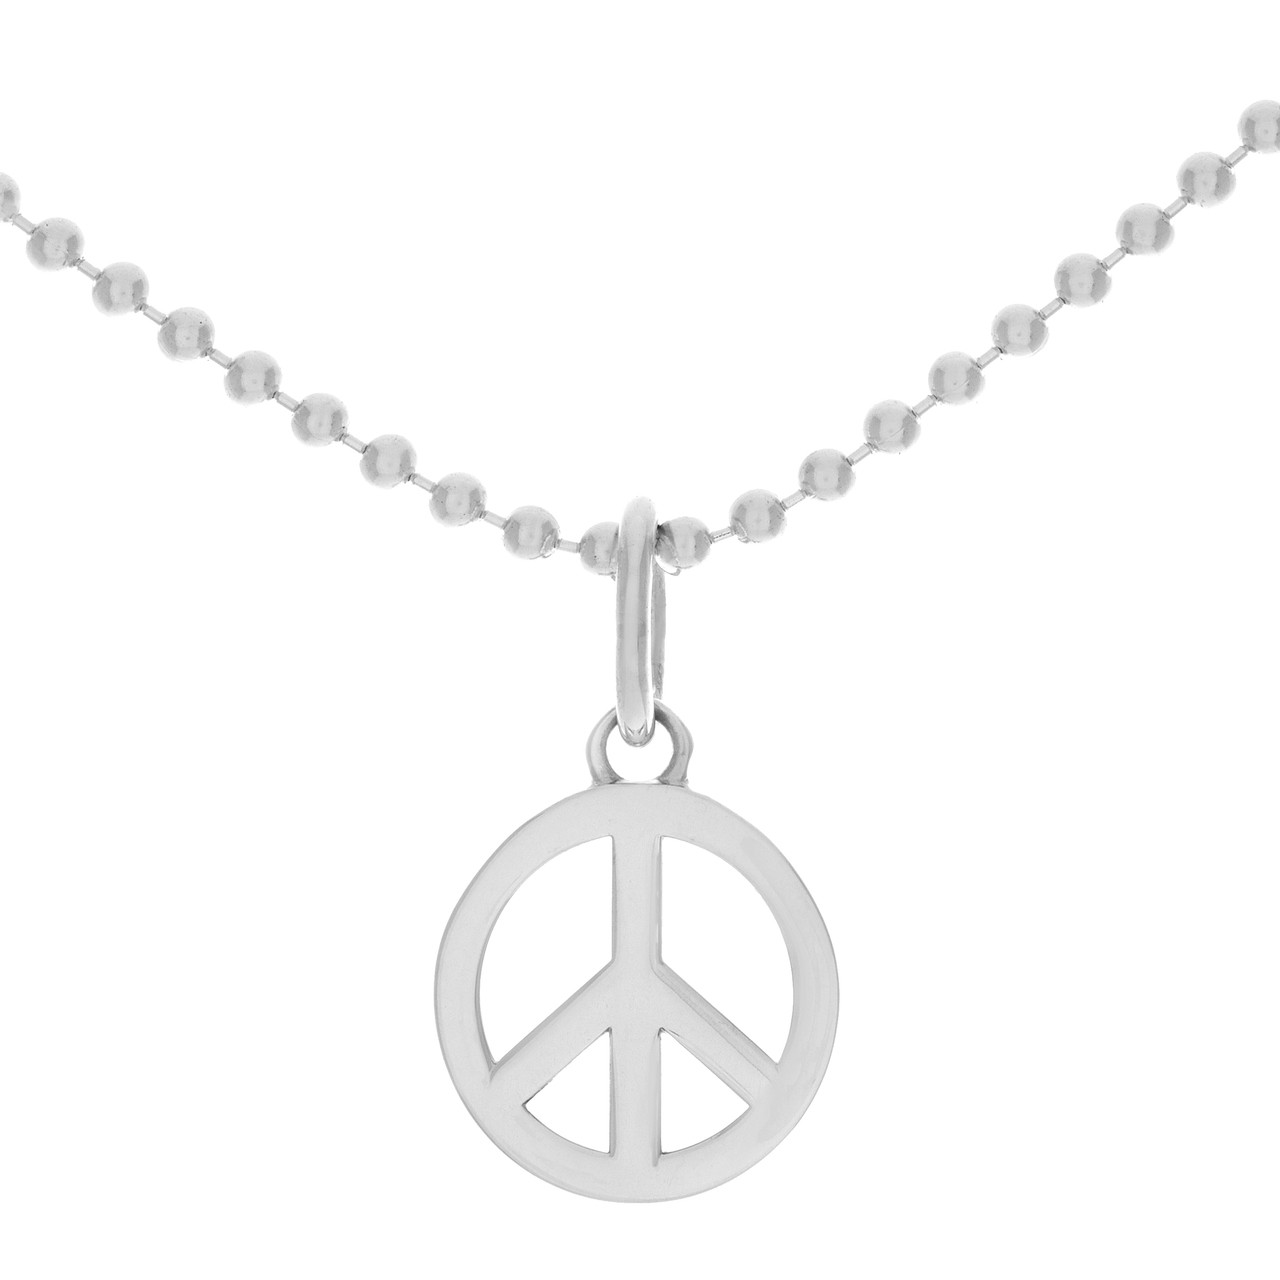 087af76aadcb Tiffany   Co. Sterling Silver Peace Sign Charm on Beaded Chain ...